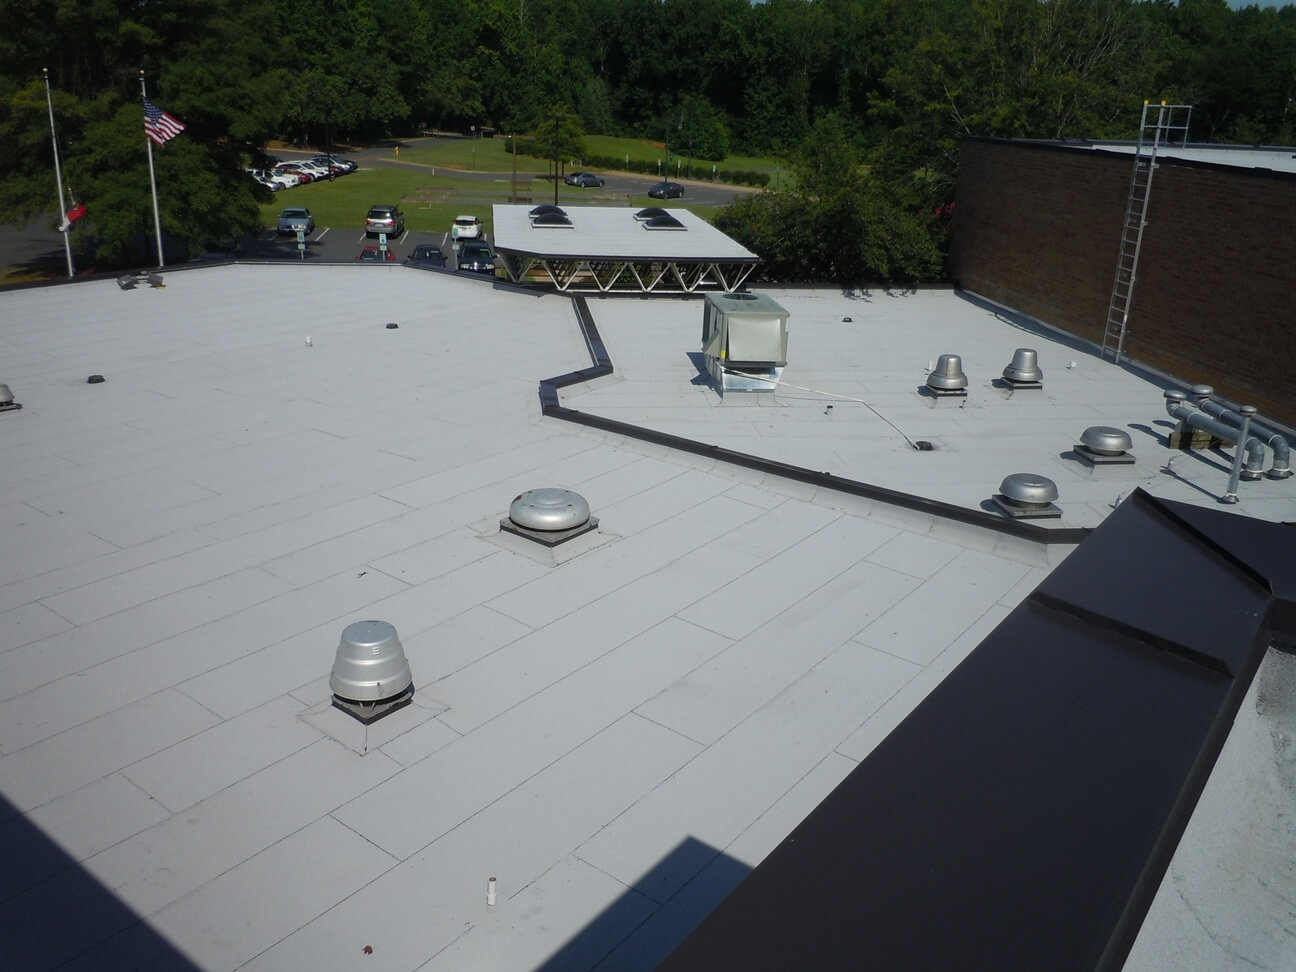 Flat roof protected with rolled-on asphalt which has stuck to the deck to seal any leaks.